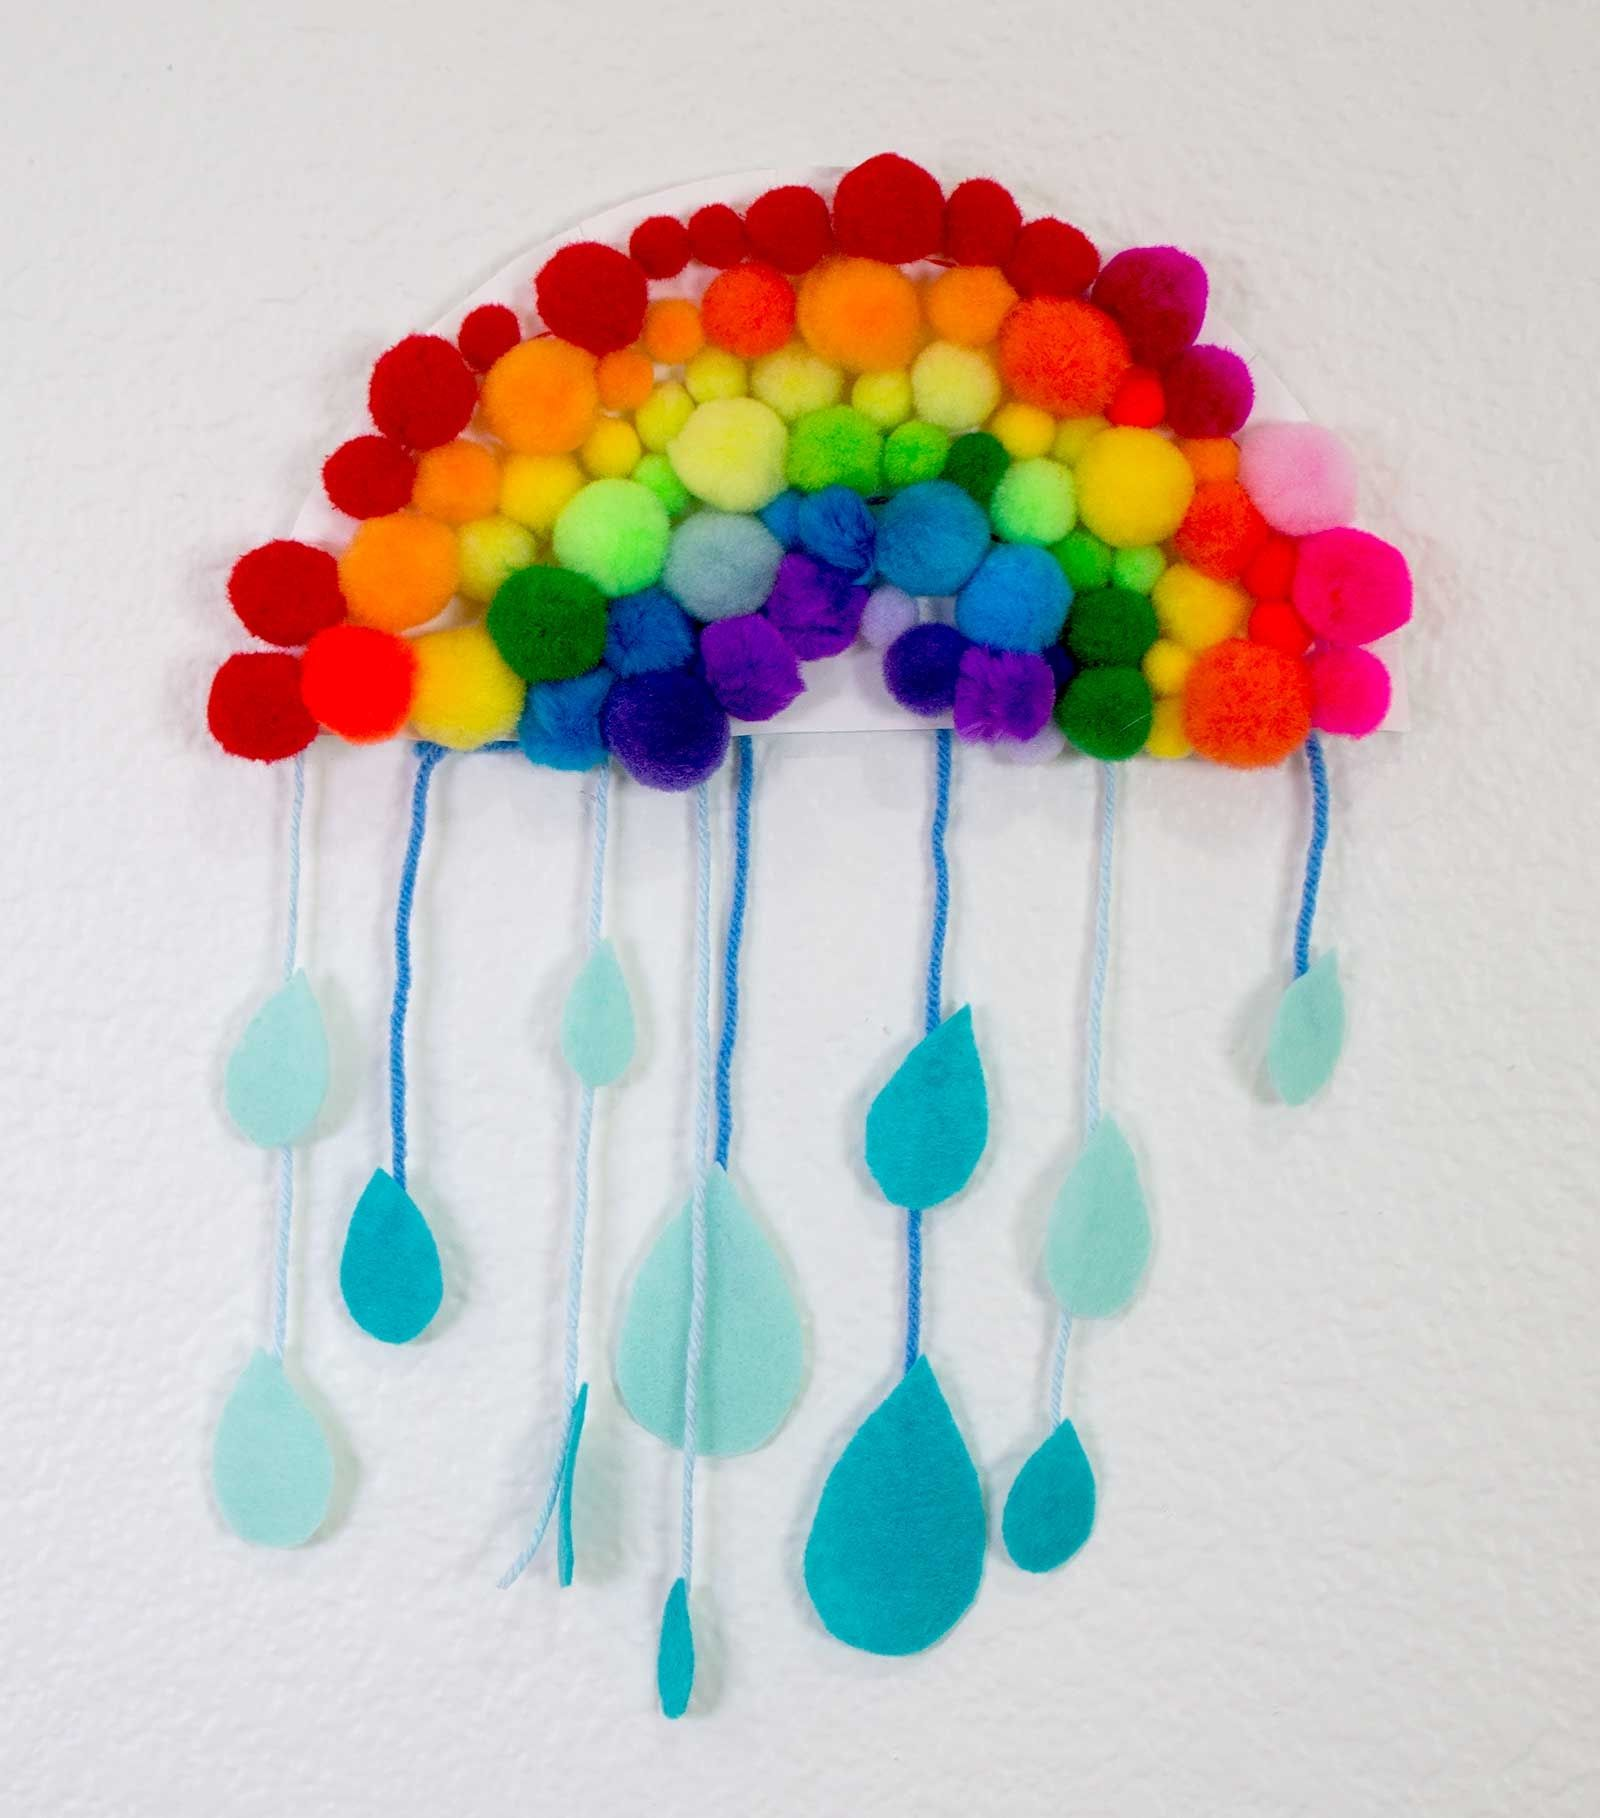 Want An Easy Rainy Day Rainbow Craft For The Kids